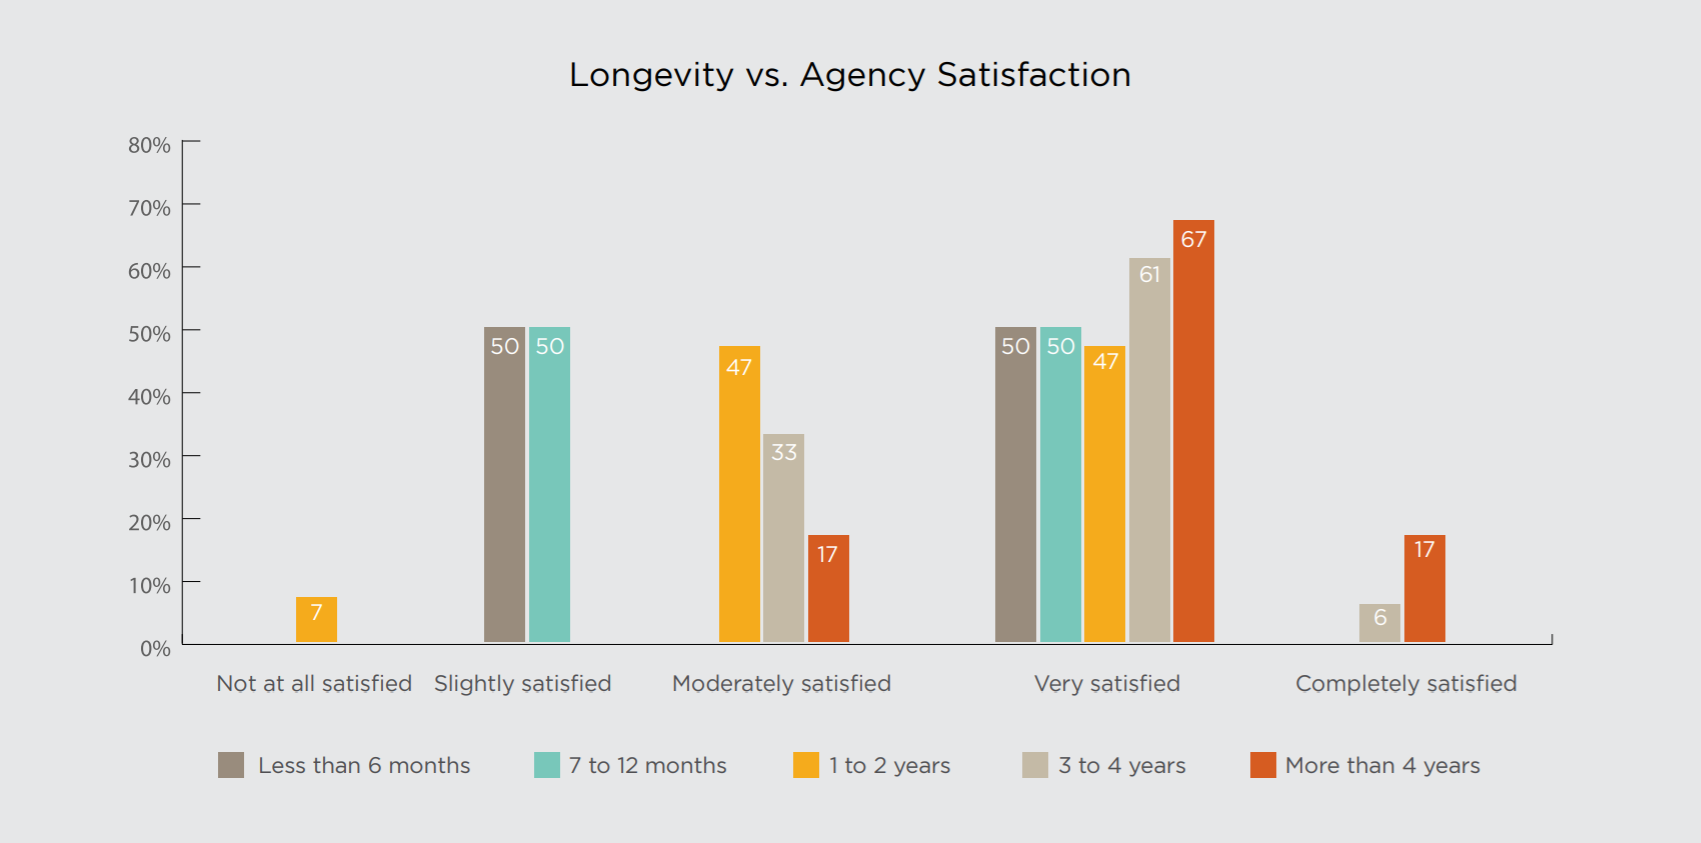 What's the key driver of agency longevity?